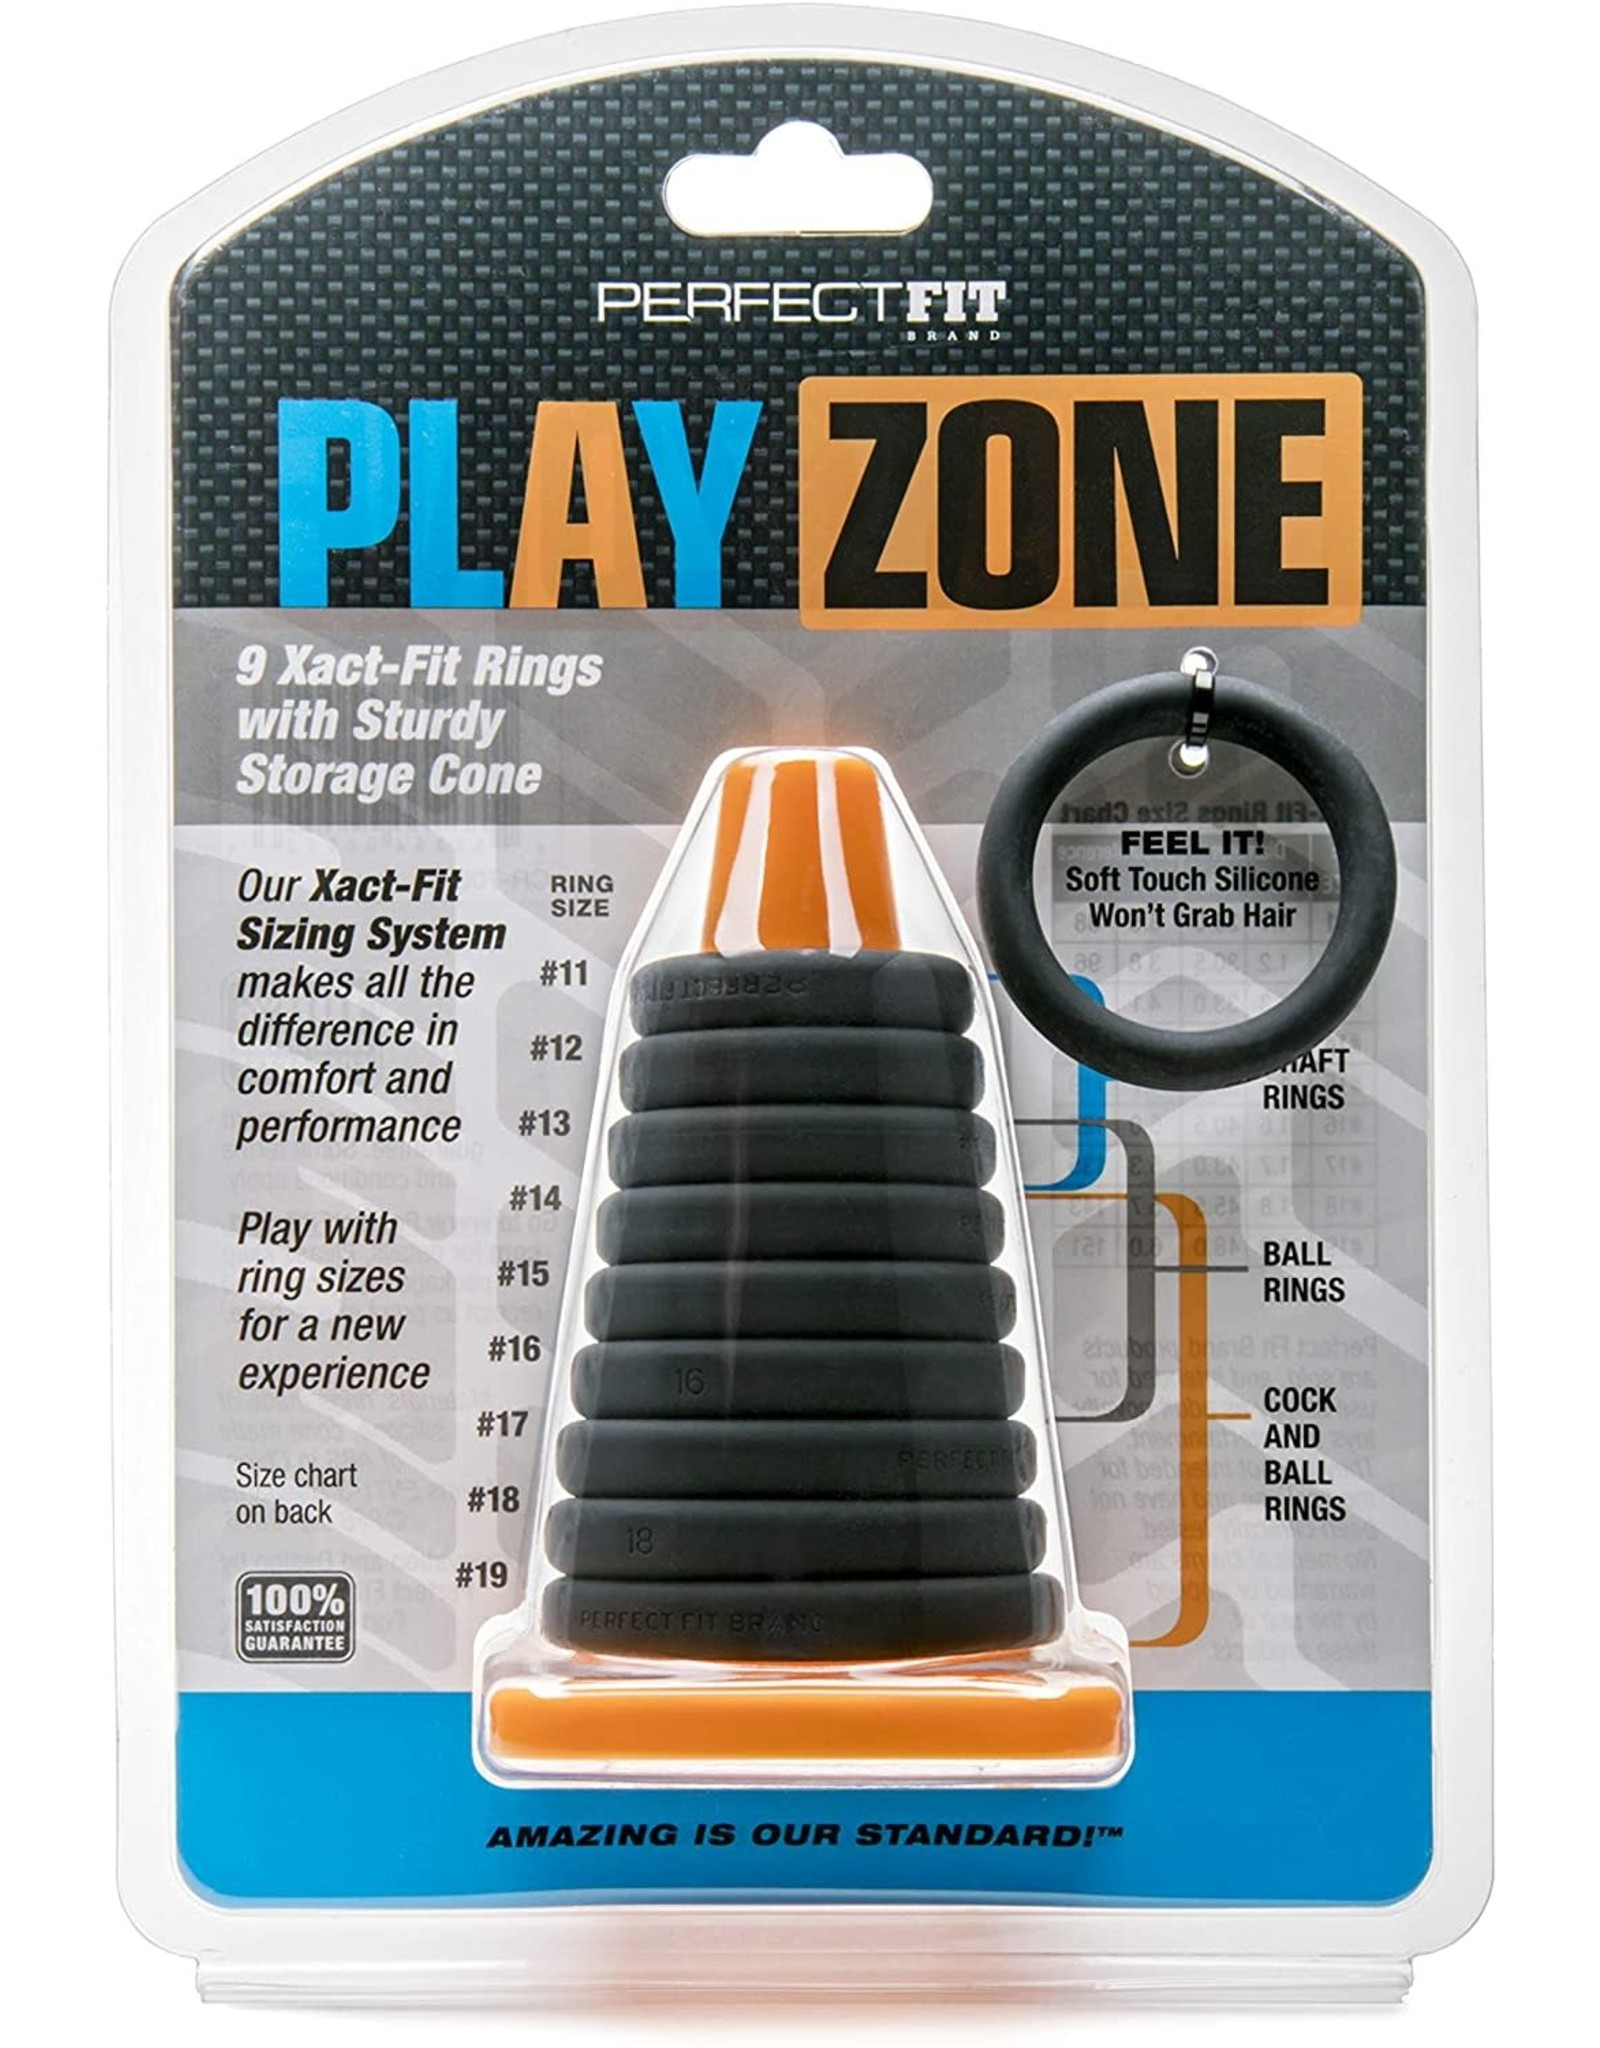 Perfect Fit Brand Perfect Fit Brand Play Zone Kit